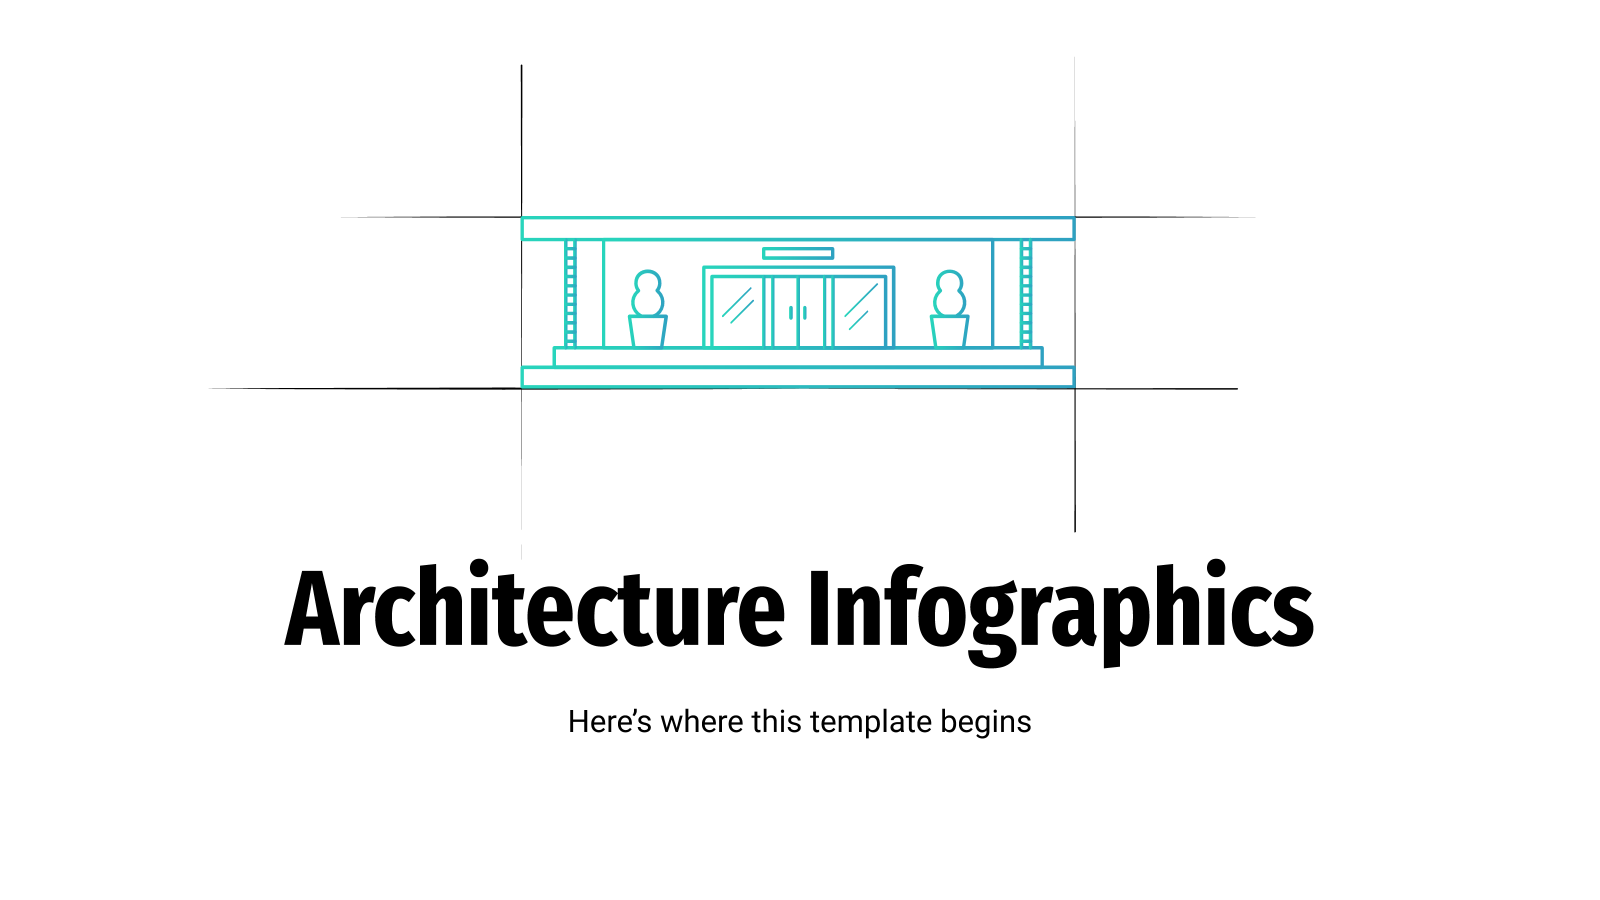 Architecture Infographics presentation template